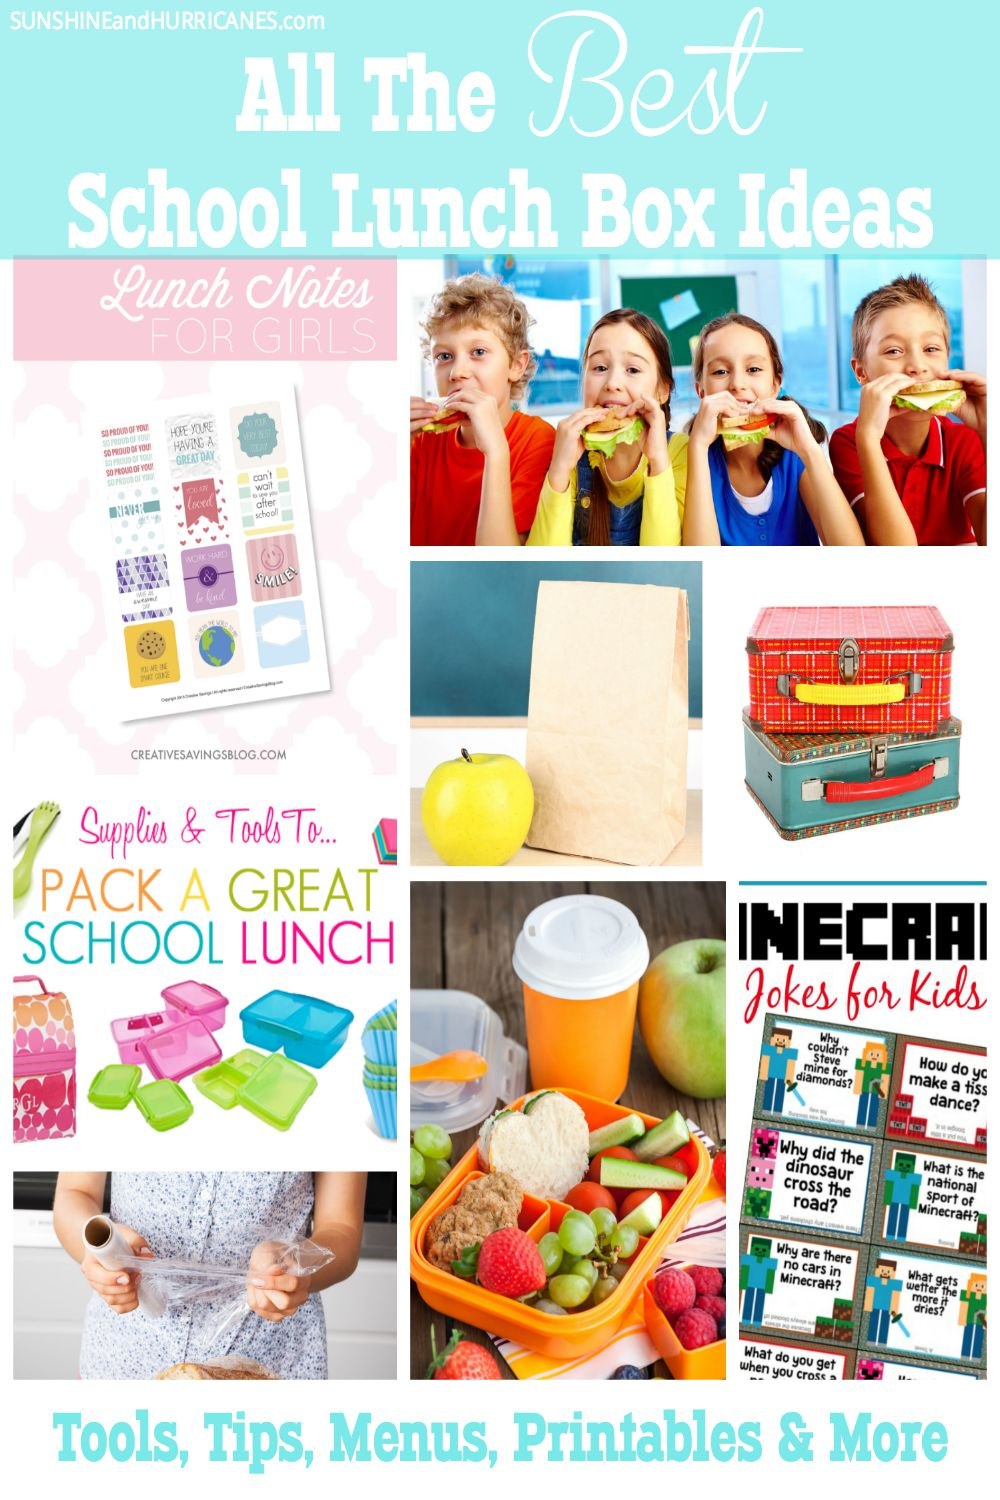 Do you need a solution to school lunch stress? We've got all your answers in one place with all the best lunch box ideas! What's the best lunch box? Check! Easy Lunch Box Meals? Check! Printables, Ways to Get Your Kids to Make Their Own Lunches, and More! Lunch Box Ideas Roundup. SunshineandHurricanes.com